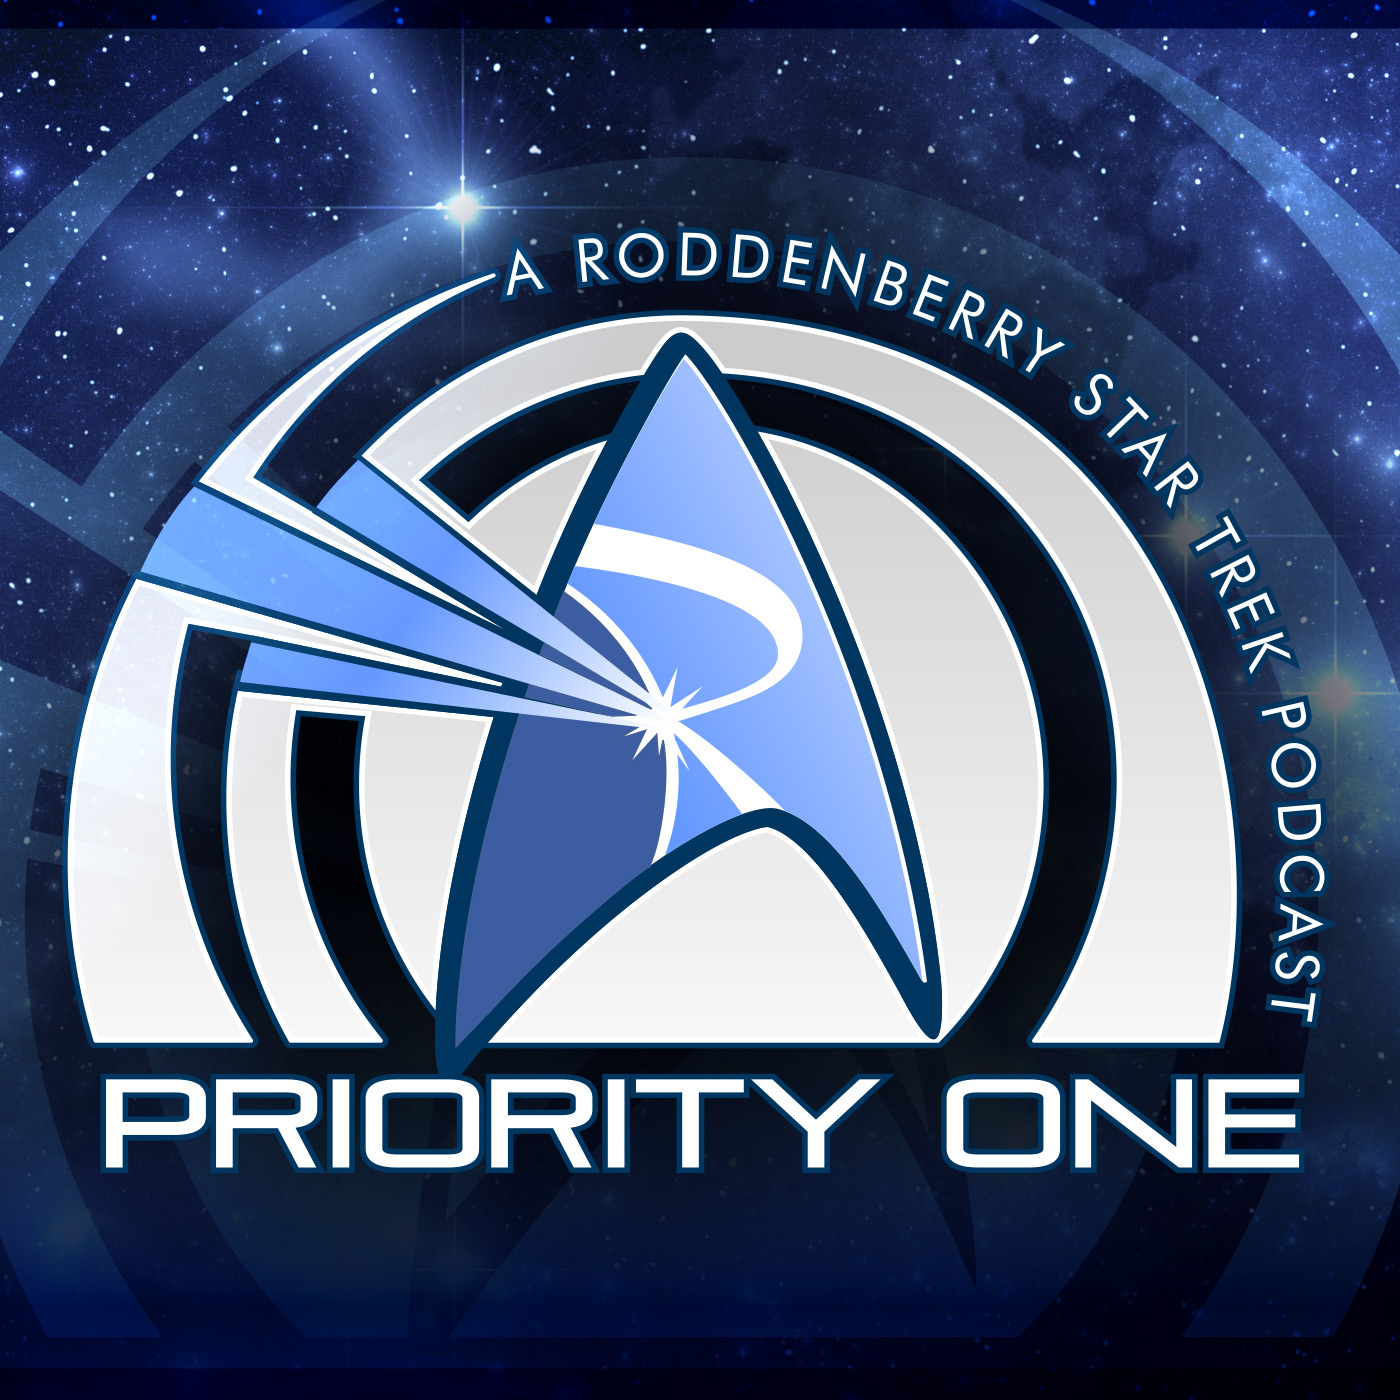 Artwork for 407 - Borg to be Wild | Priority One: A Roddenberry Star Trek Podcast